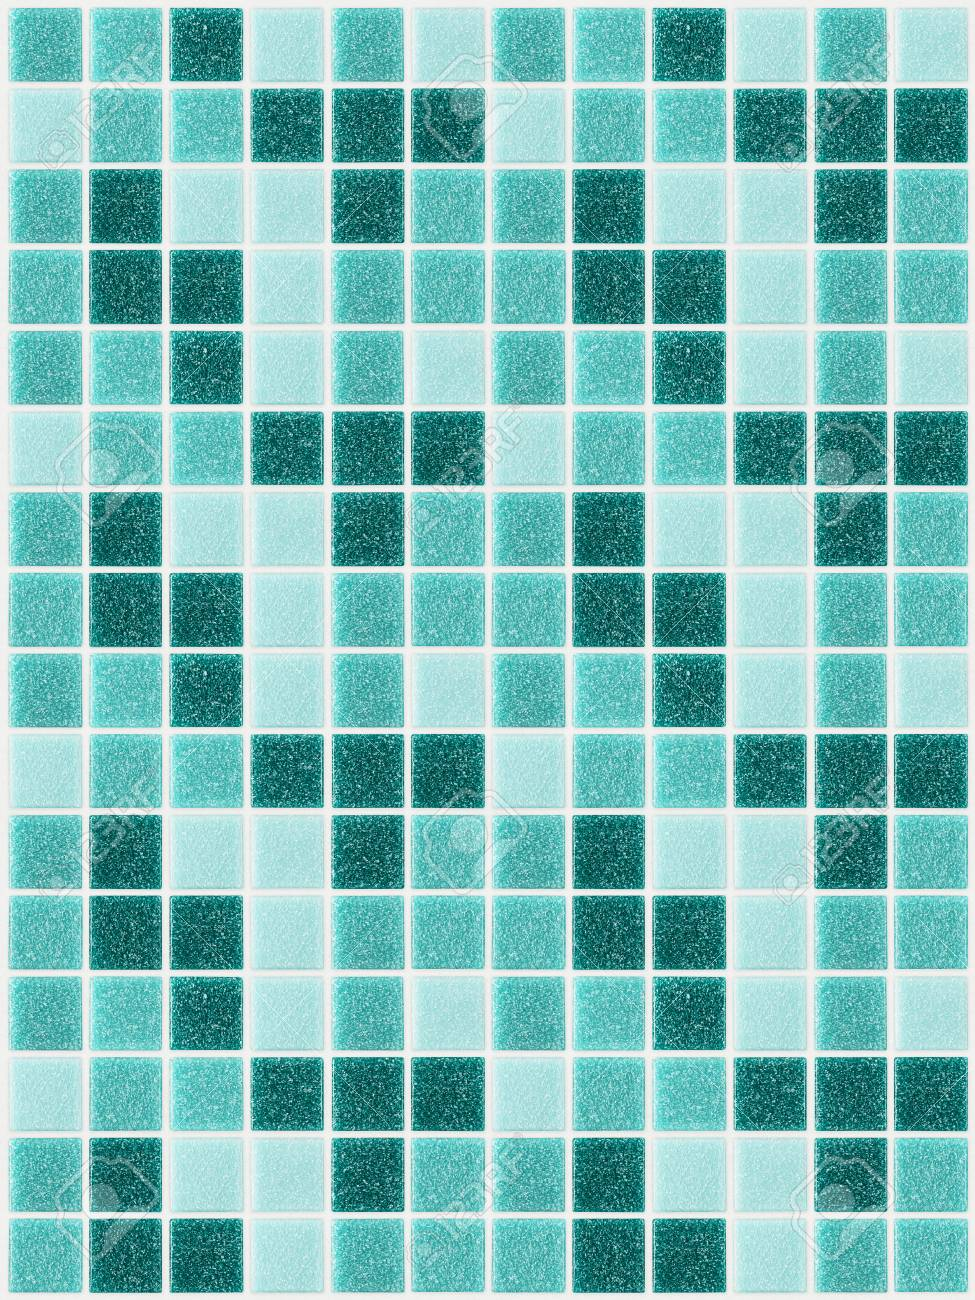 Small Colored Decorative Tiles Mosaic Stock Photo, Picture And ...